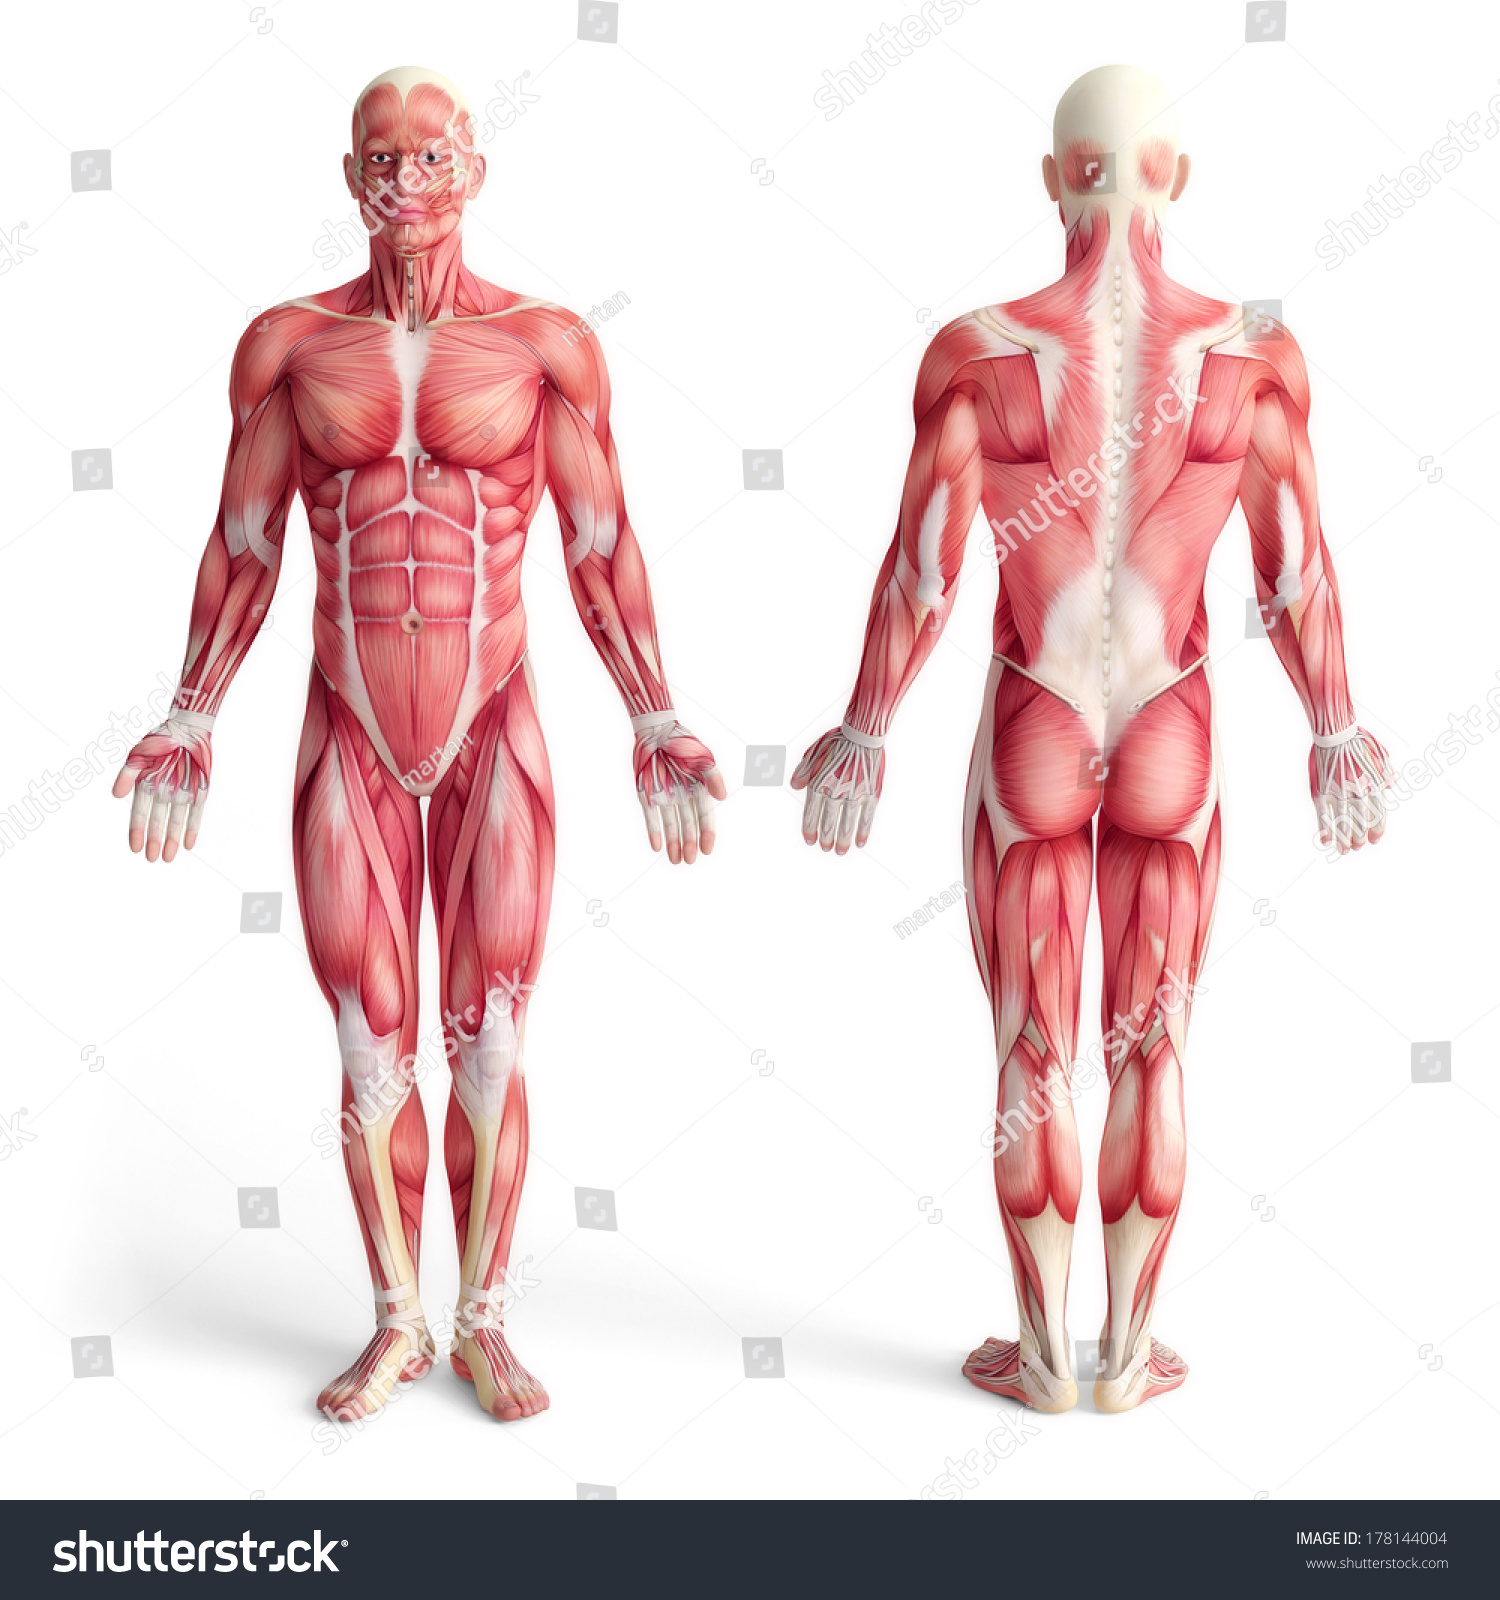 University Pictures Of Muscular System 41